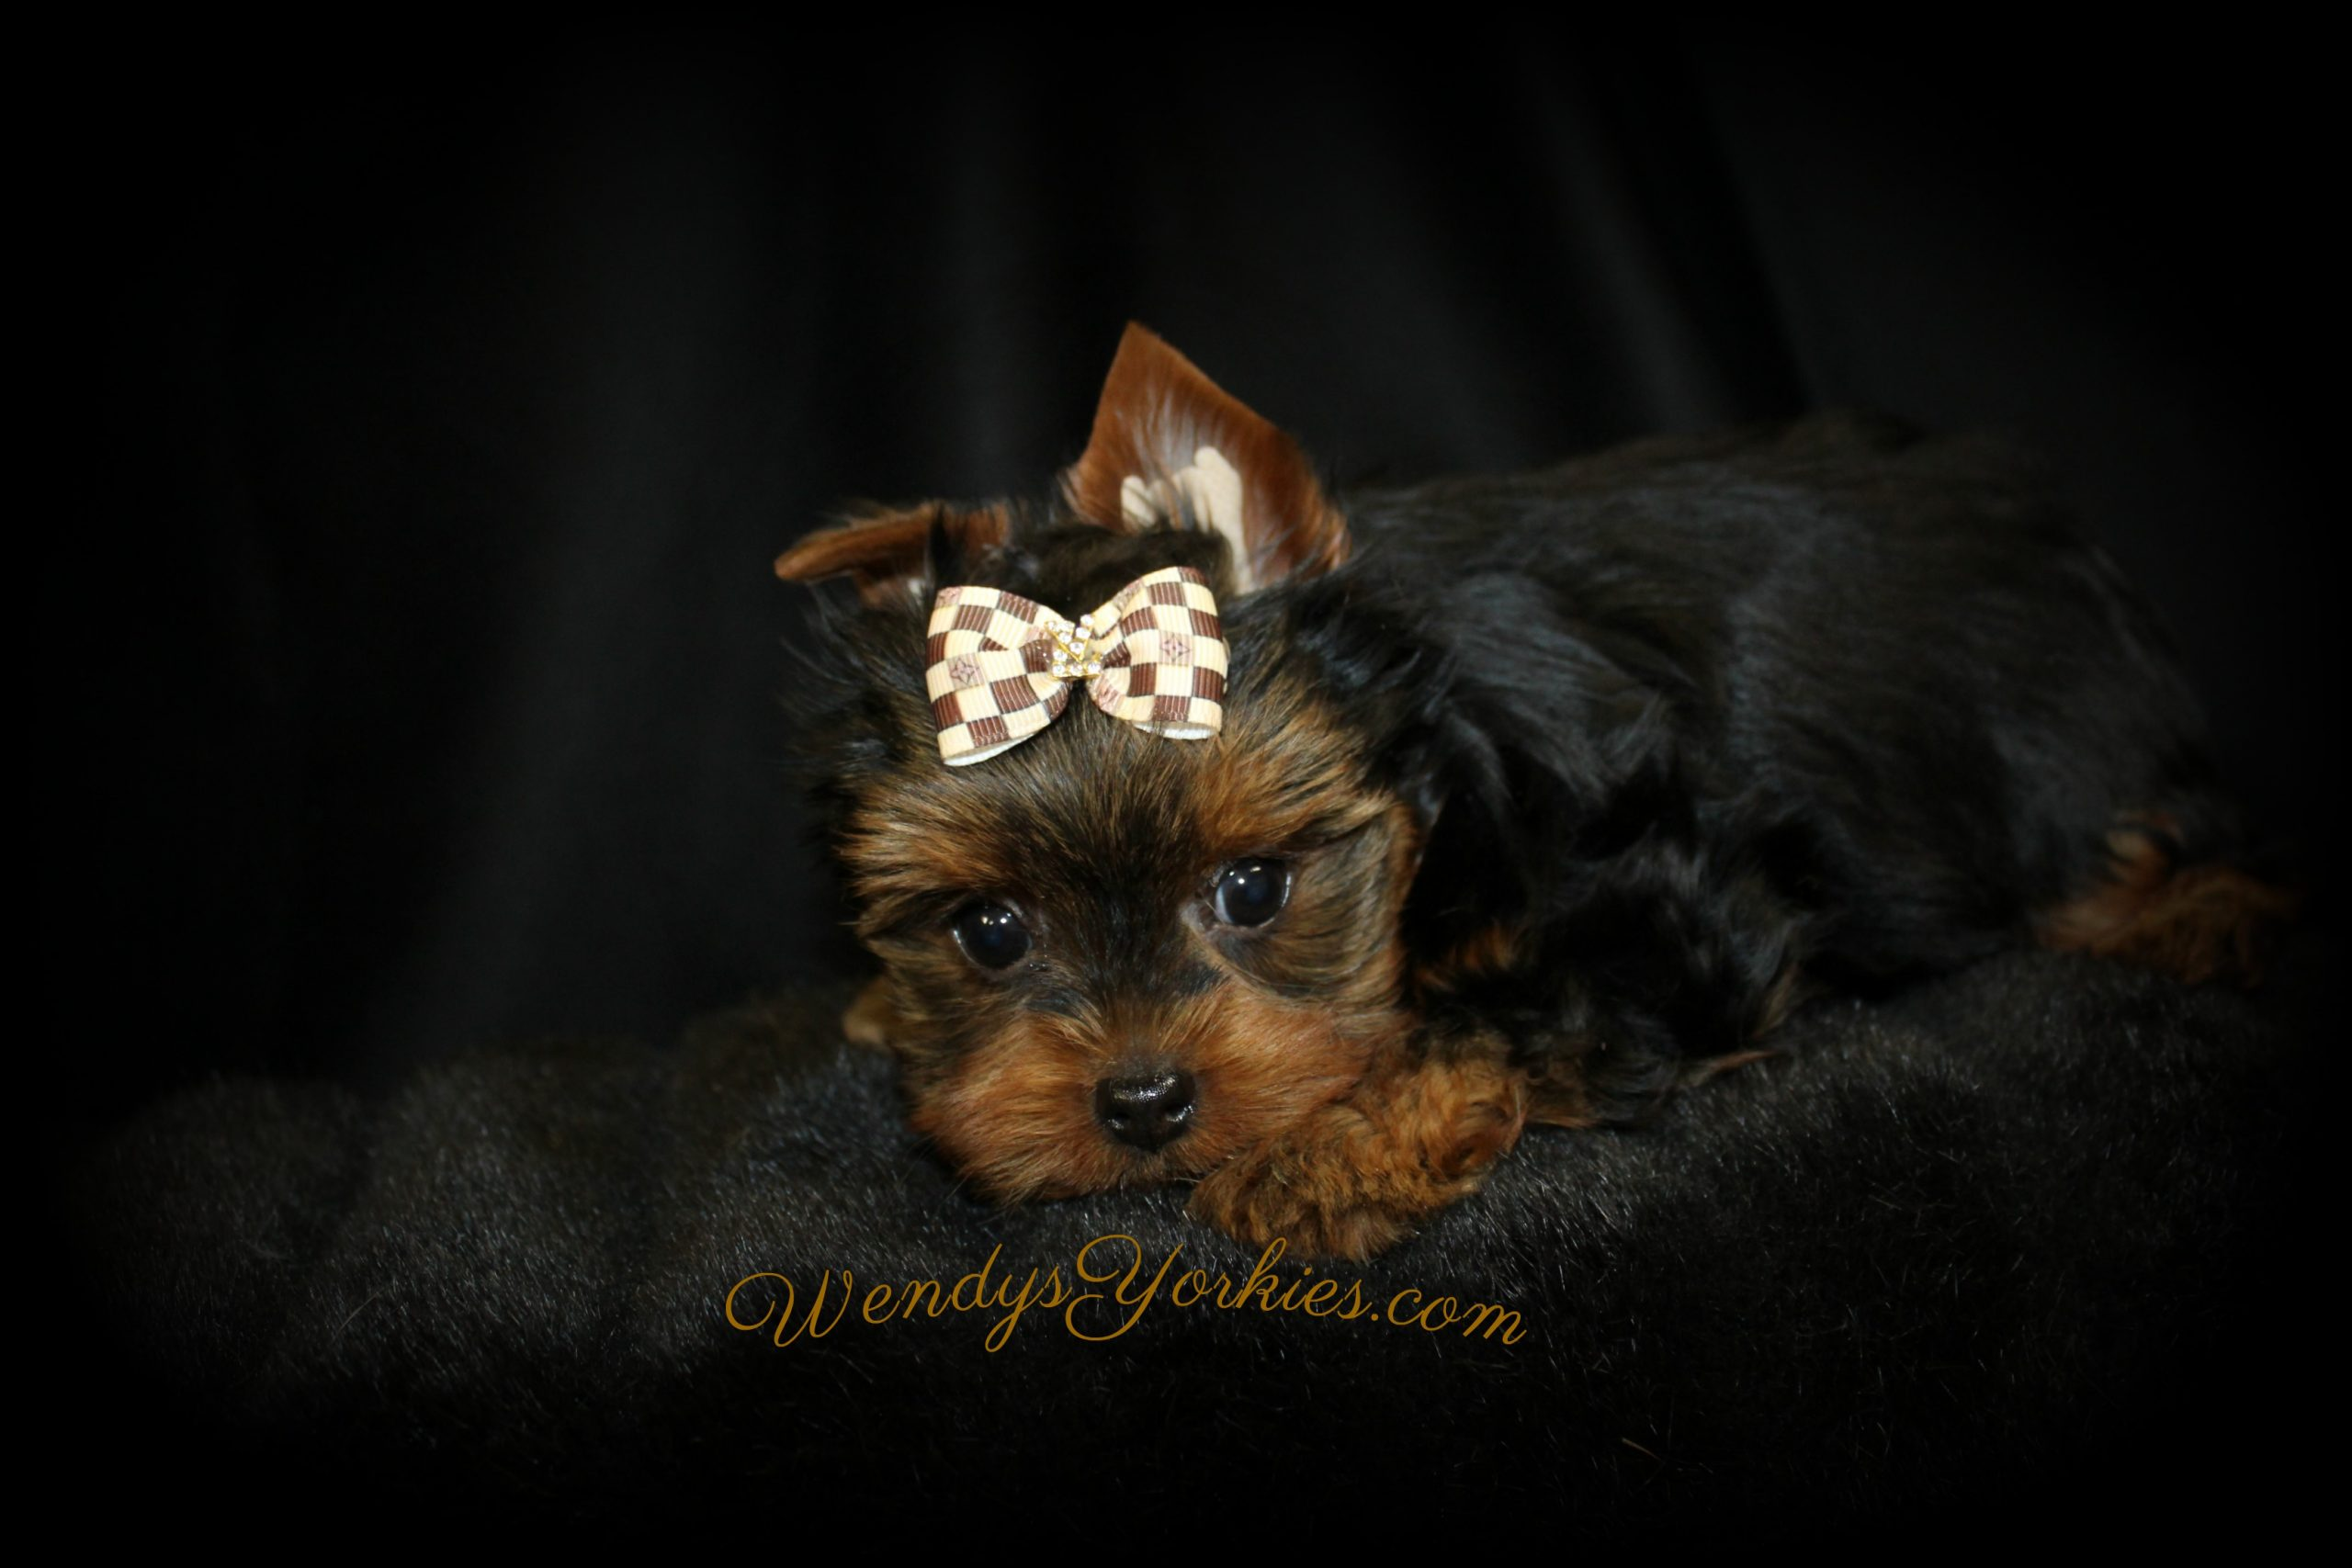 Male Yorkie puppies for sale, Harley tm2,WendysYorkies.com